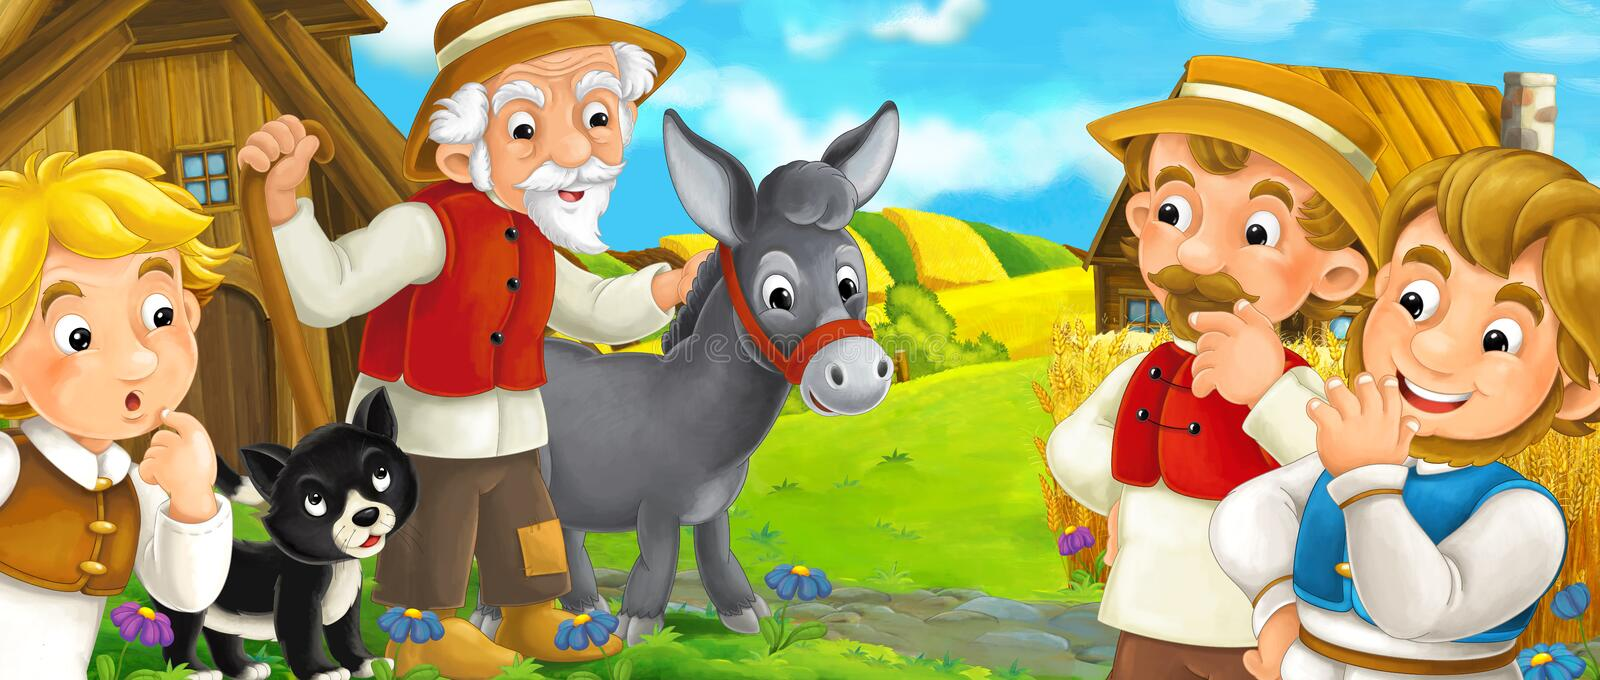 Cartoon scene with farmers family - beautiful farm scene royalty free illustration